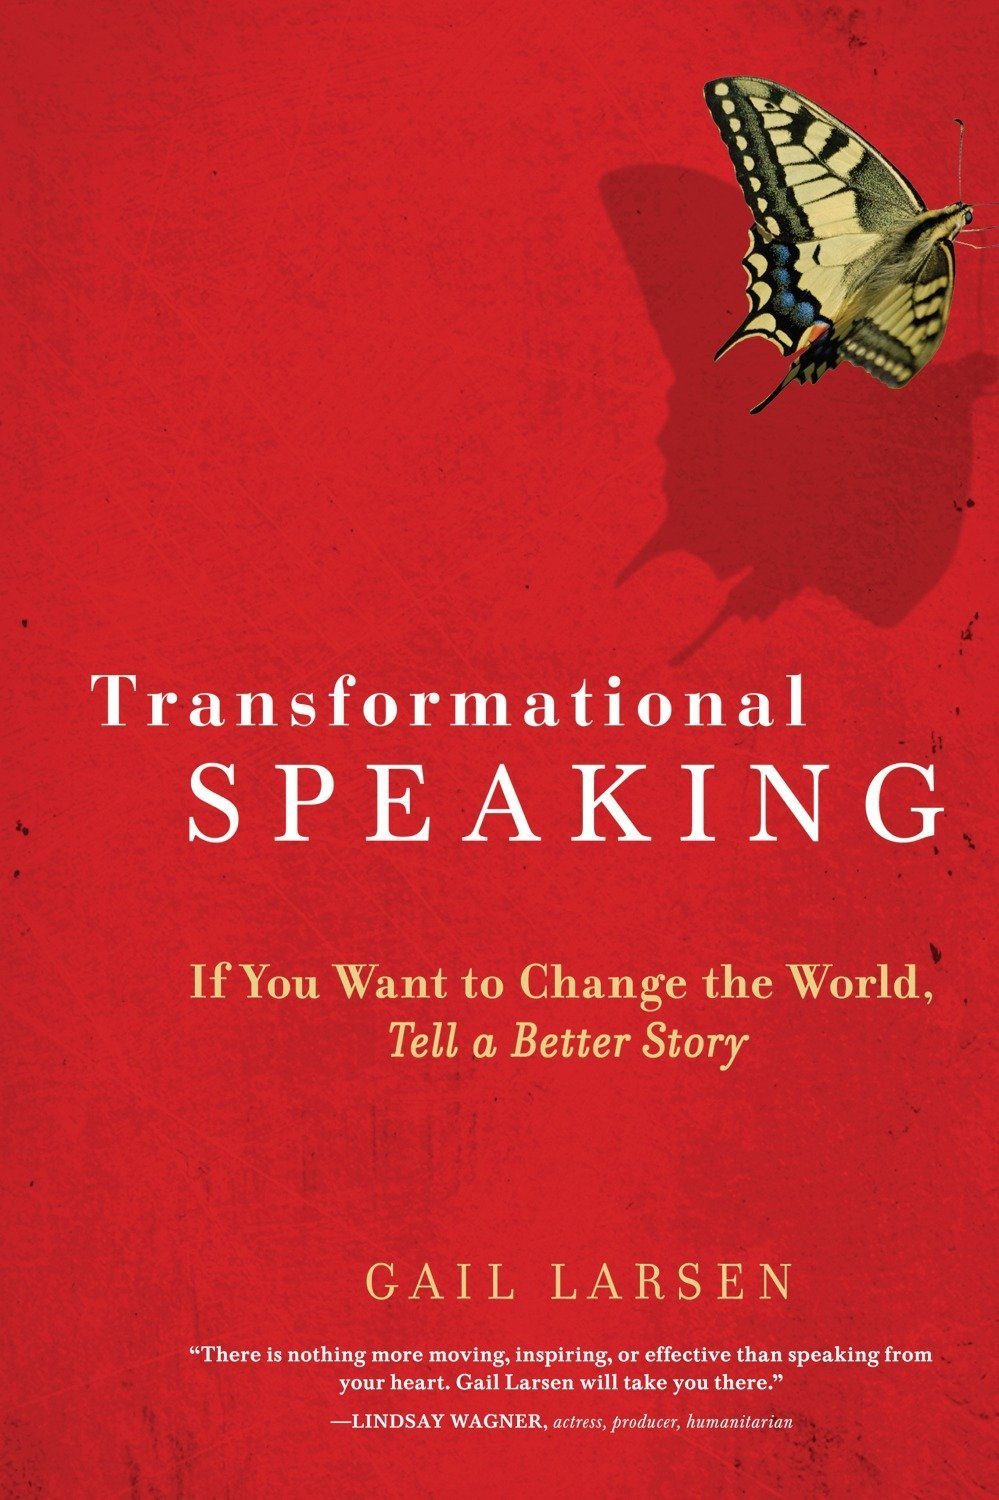 Transformational Speaking Change World Better product image